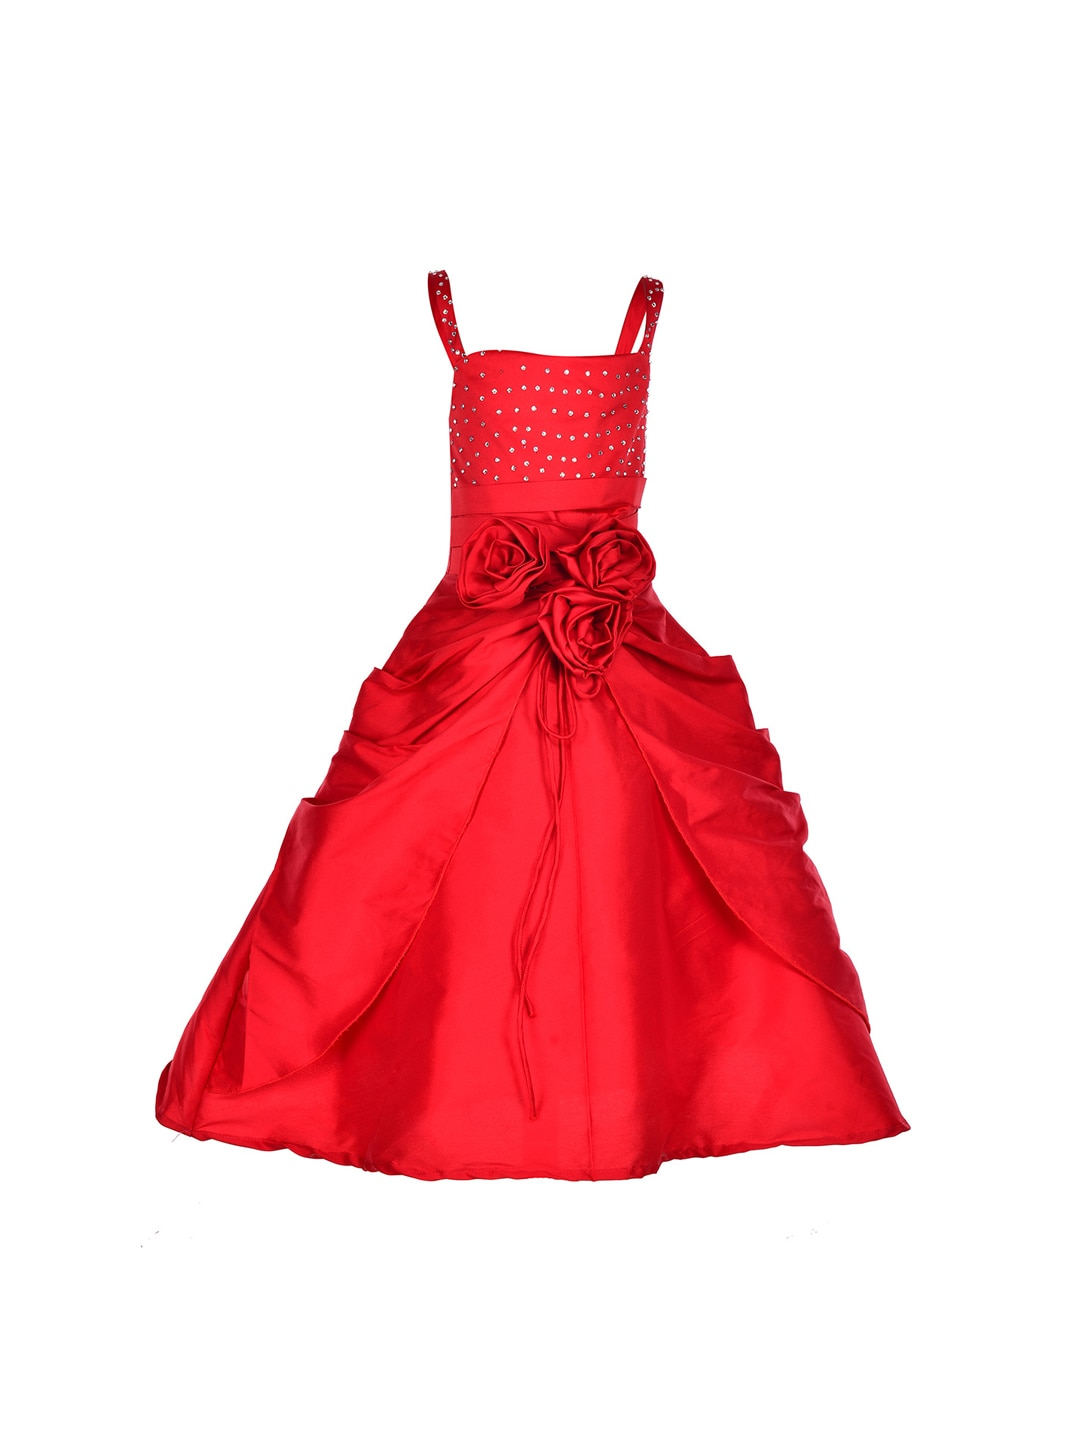 212519cf7 Red Dress - Buy Trendy Red Colour Dresses Online in India